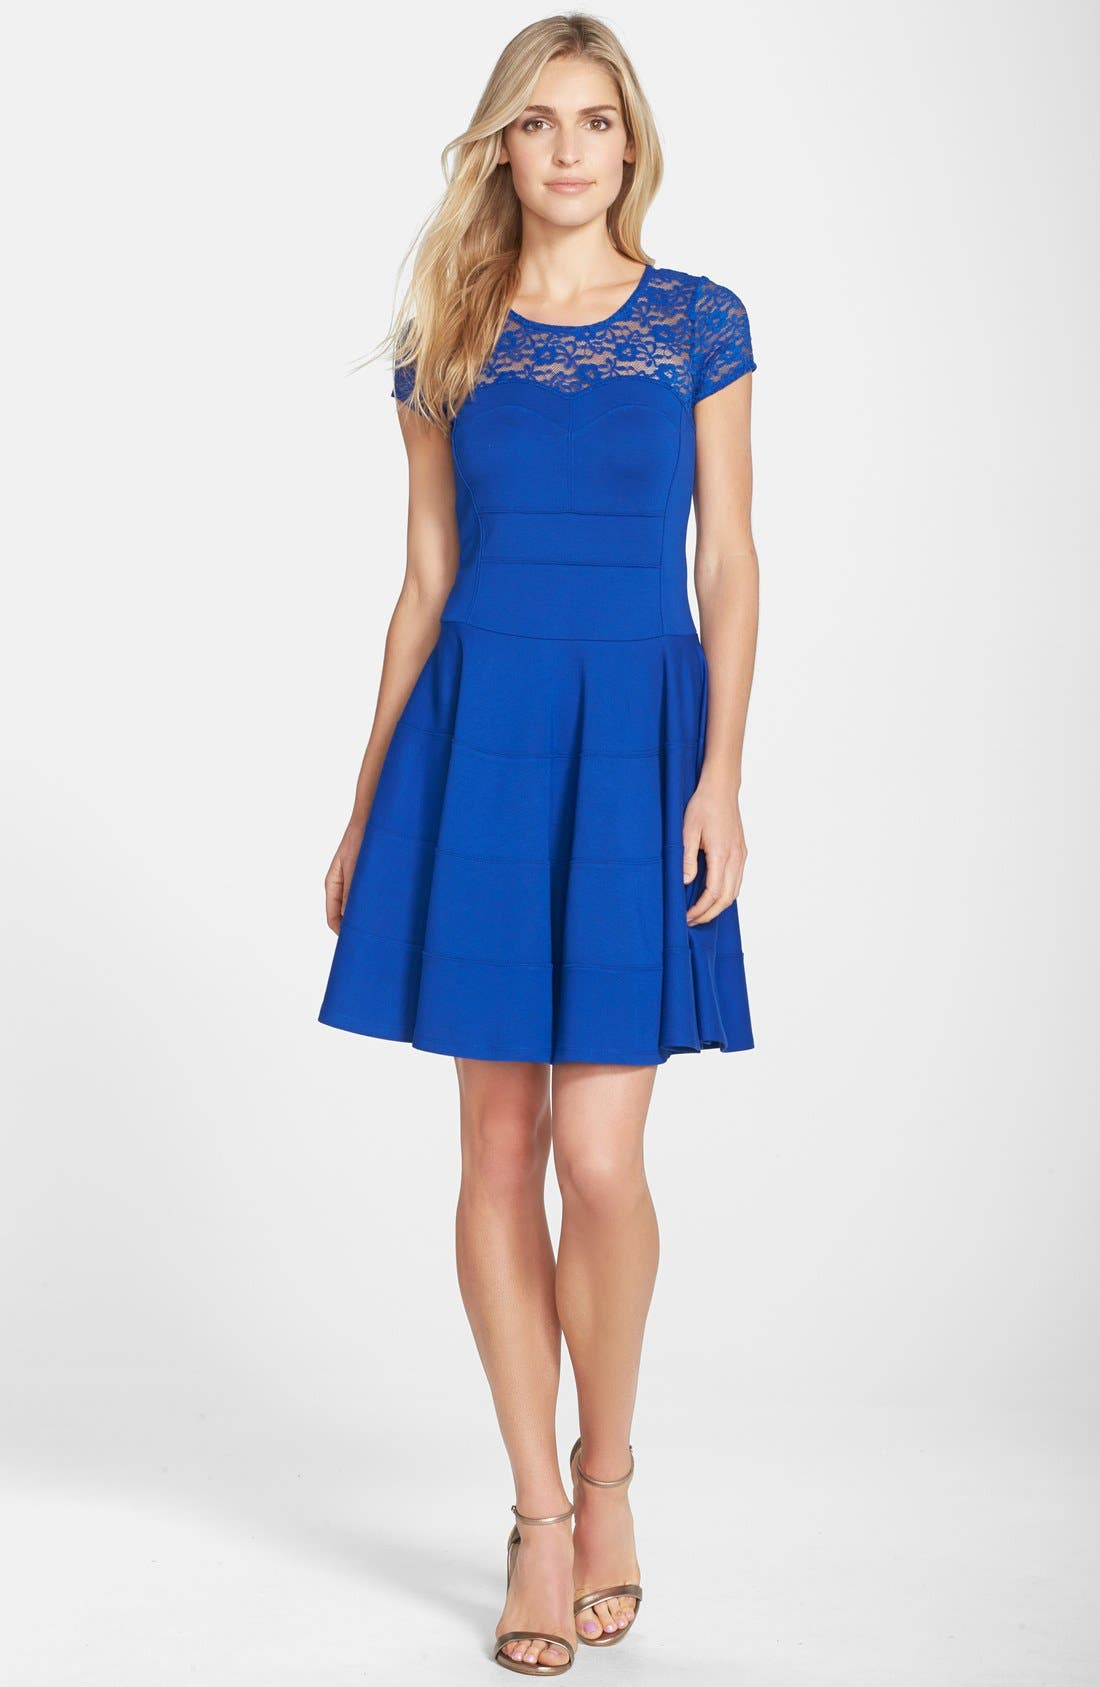 Alternate Image 1 Selected - Felicity & Coco Lace Yoke Fit & Flare Ponte Dress (Nordstrom Exclusive)